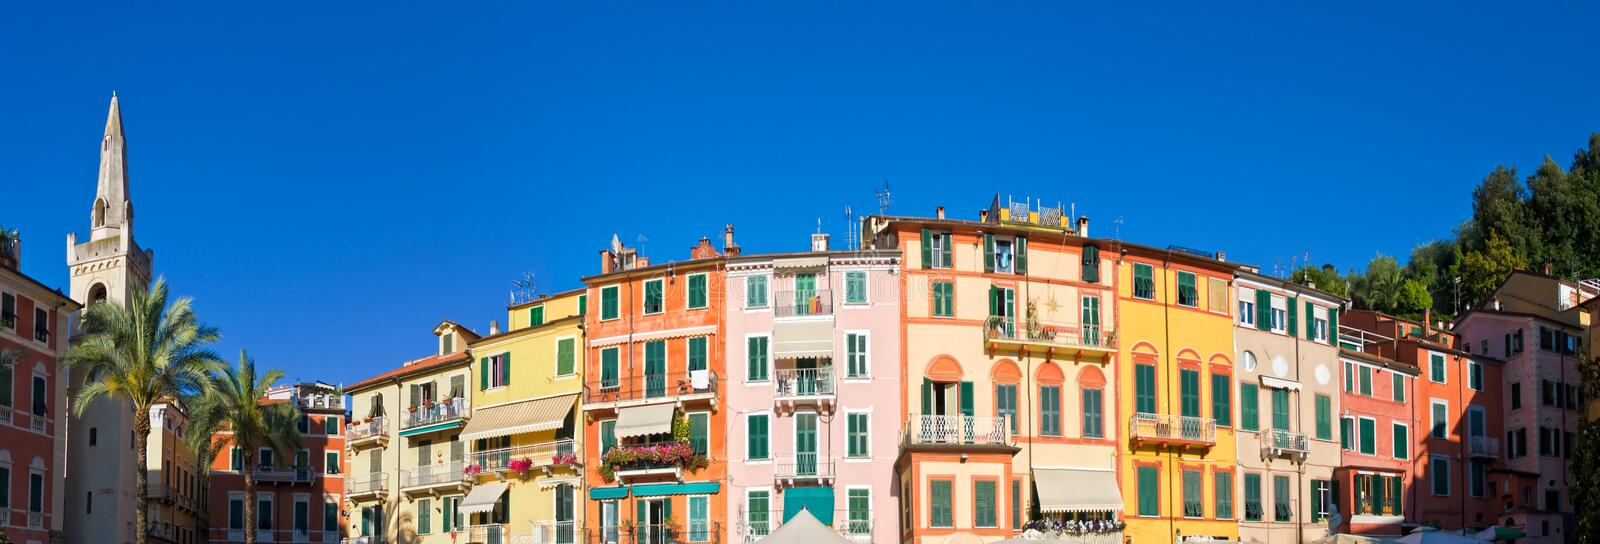 Lerici architecture, Italy royalty free stock photos